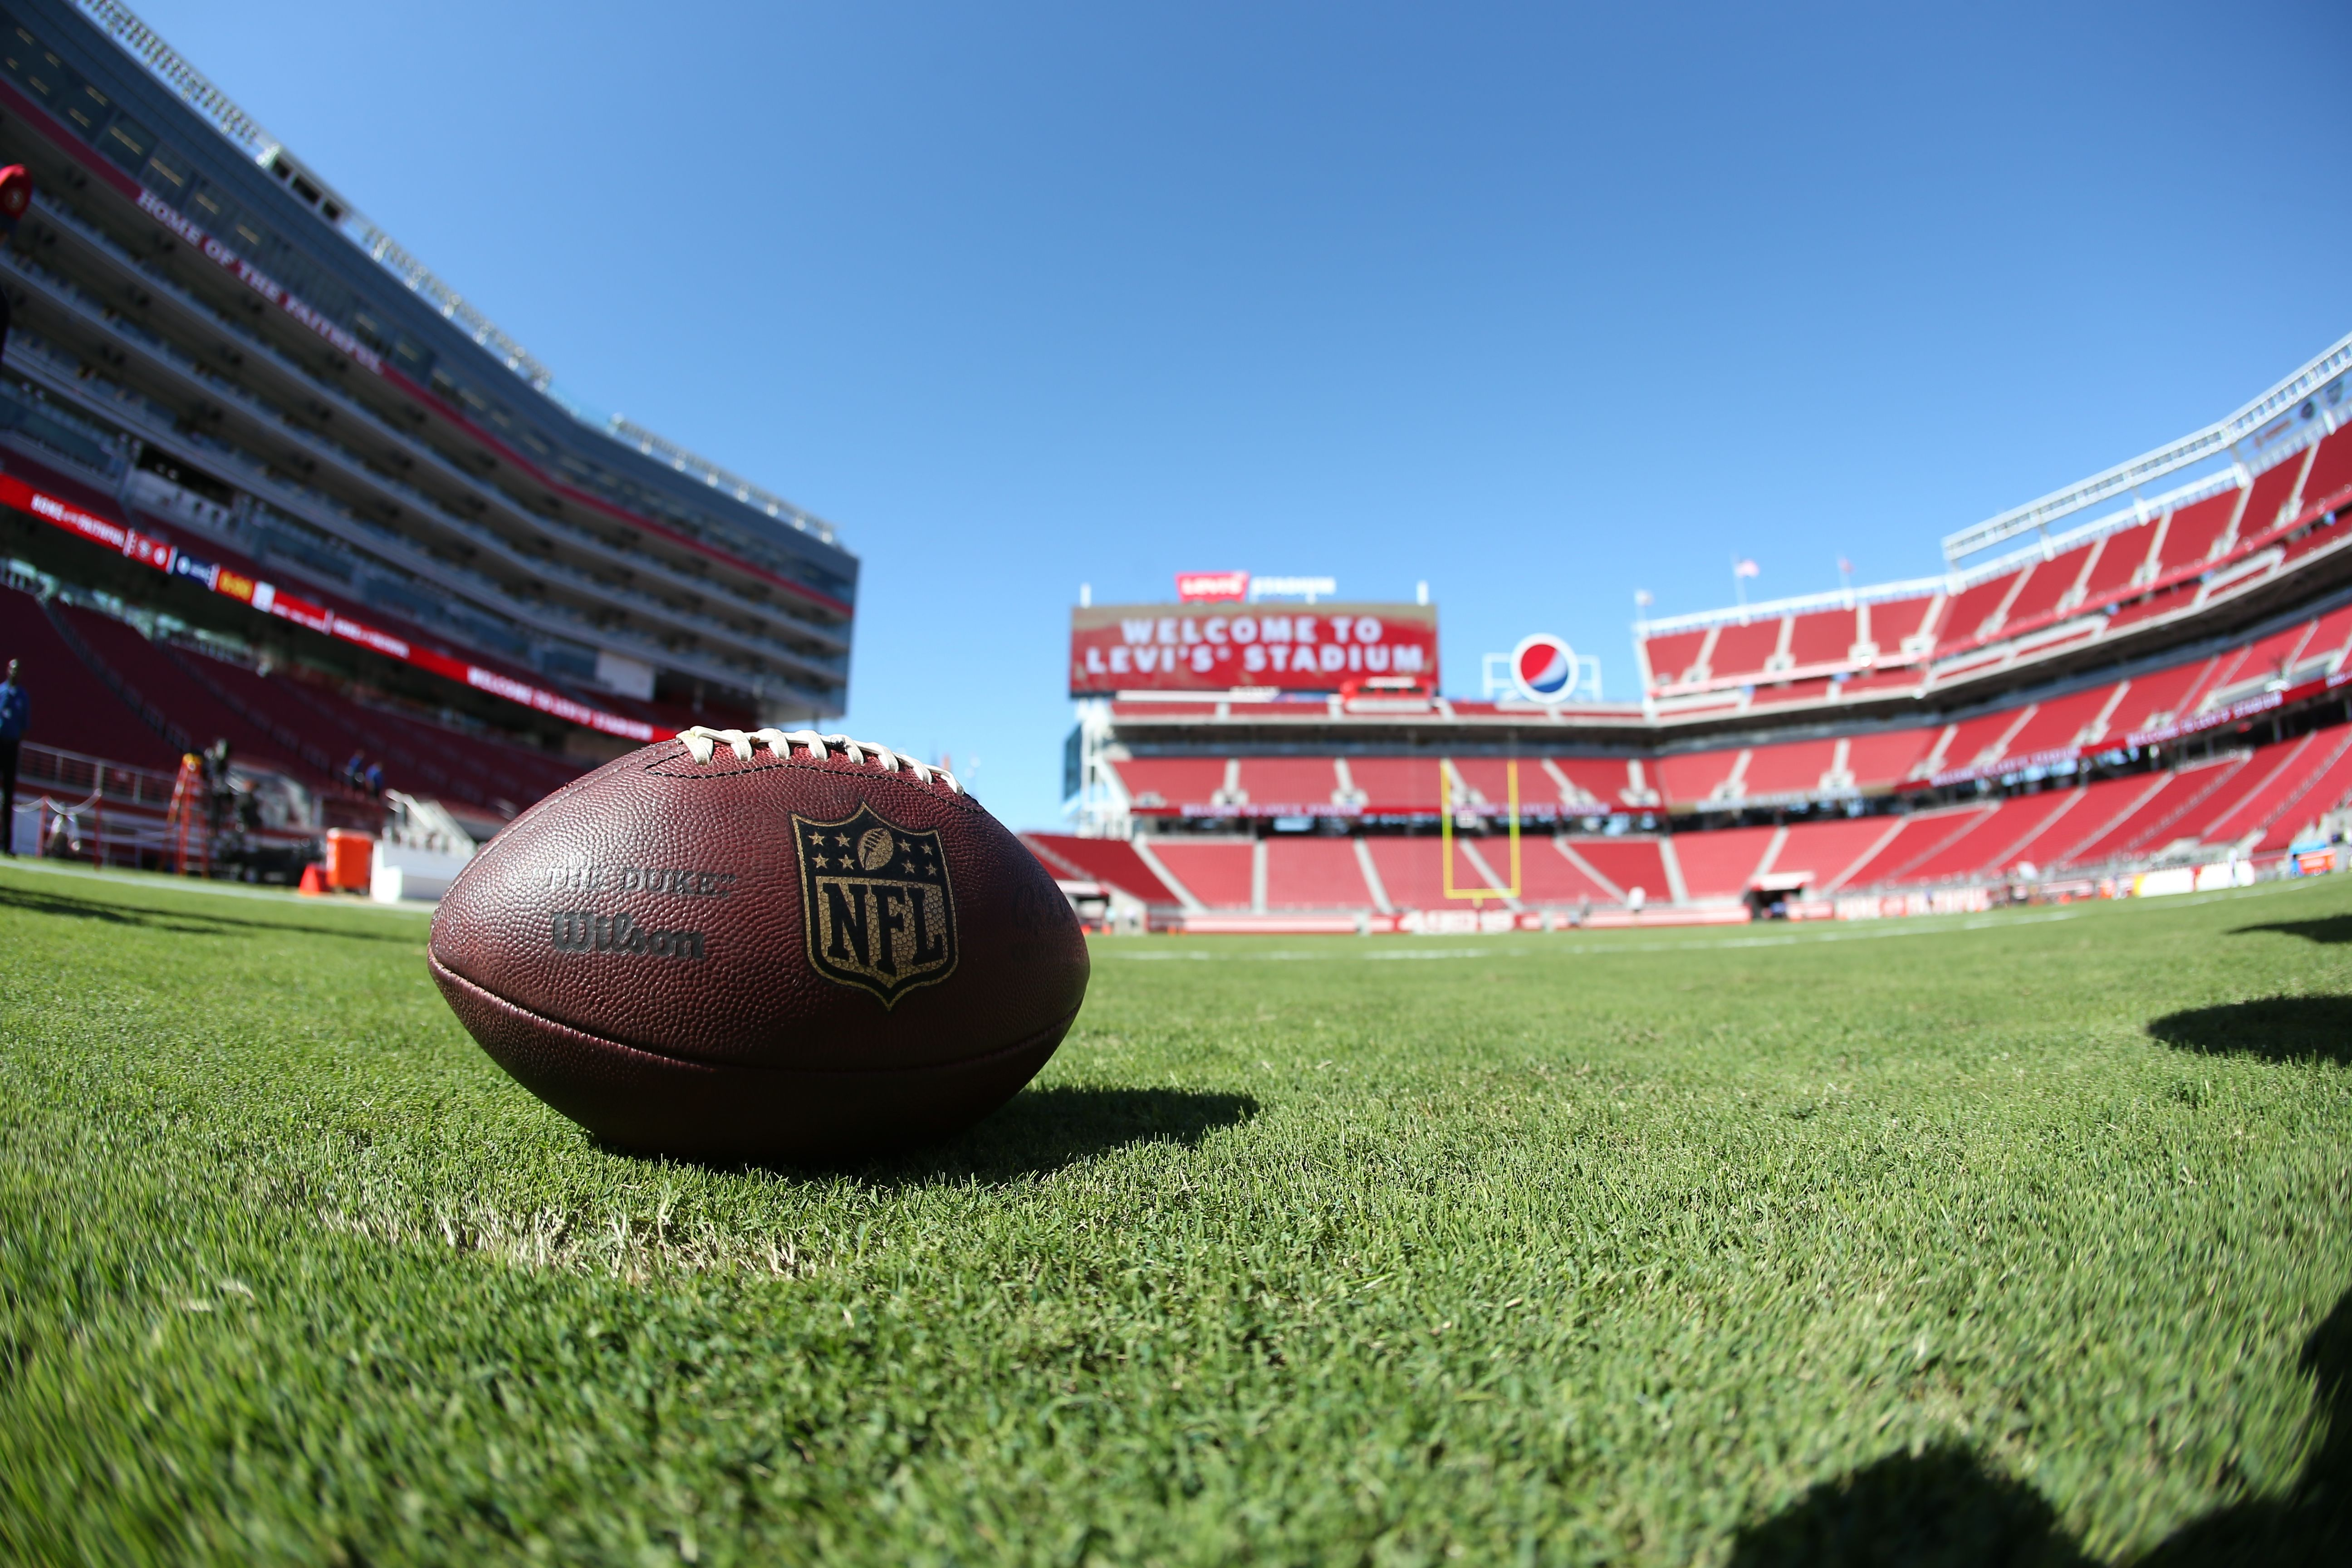 October 22, 2015:  The San Francisco 49ers vs Seattle Seahawks. The 49ers lost to the Seahawks 20-3 at Levi's Stadium in Santa Clara, CA. (Photo © 49ers Photo)